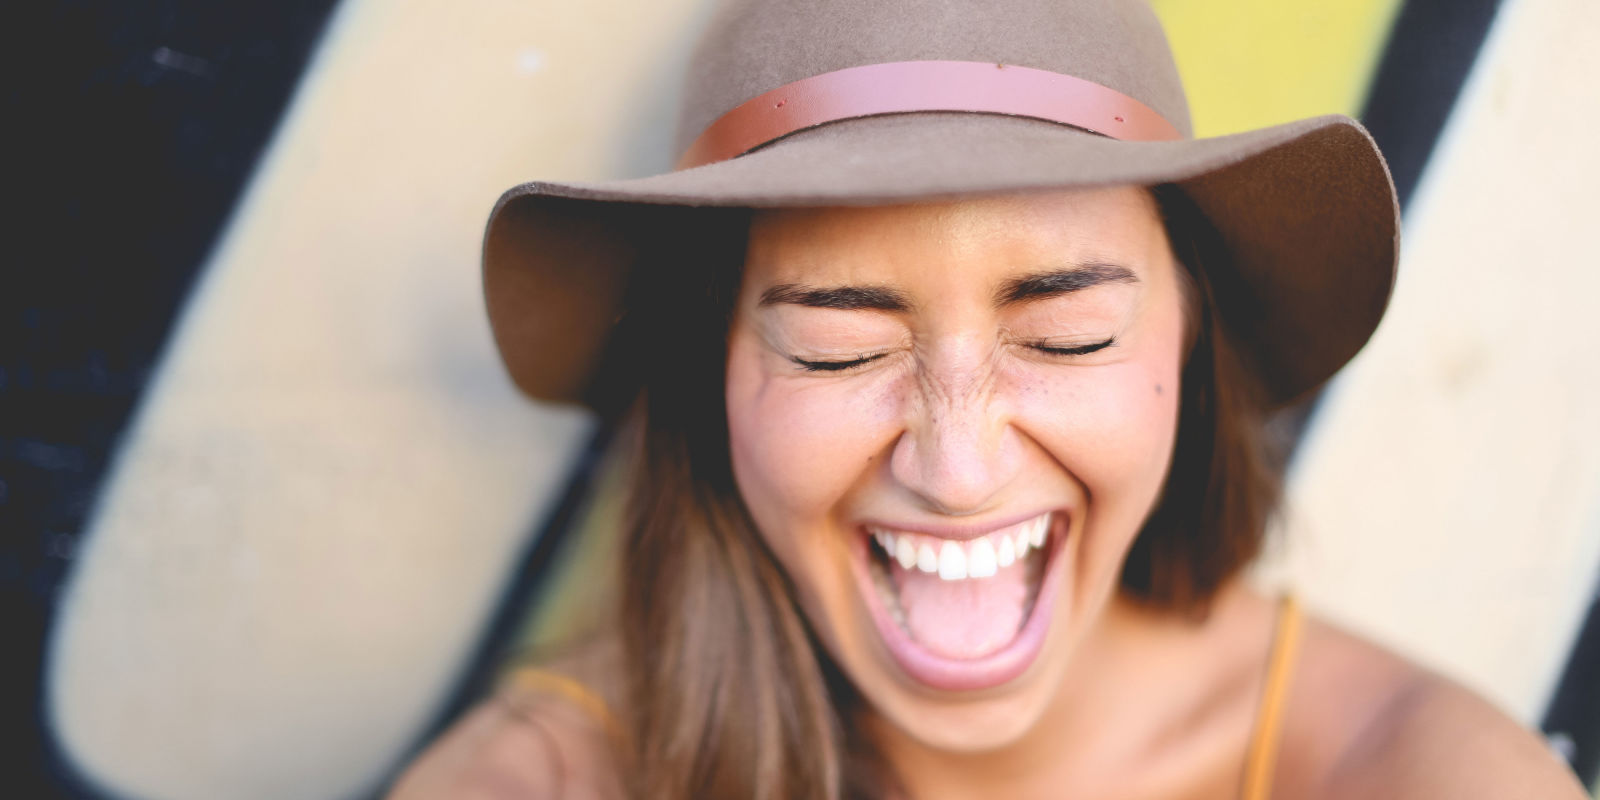 laughing is good for healthy brain